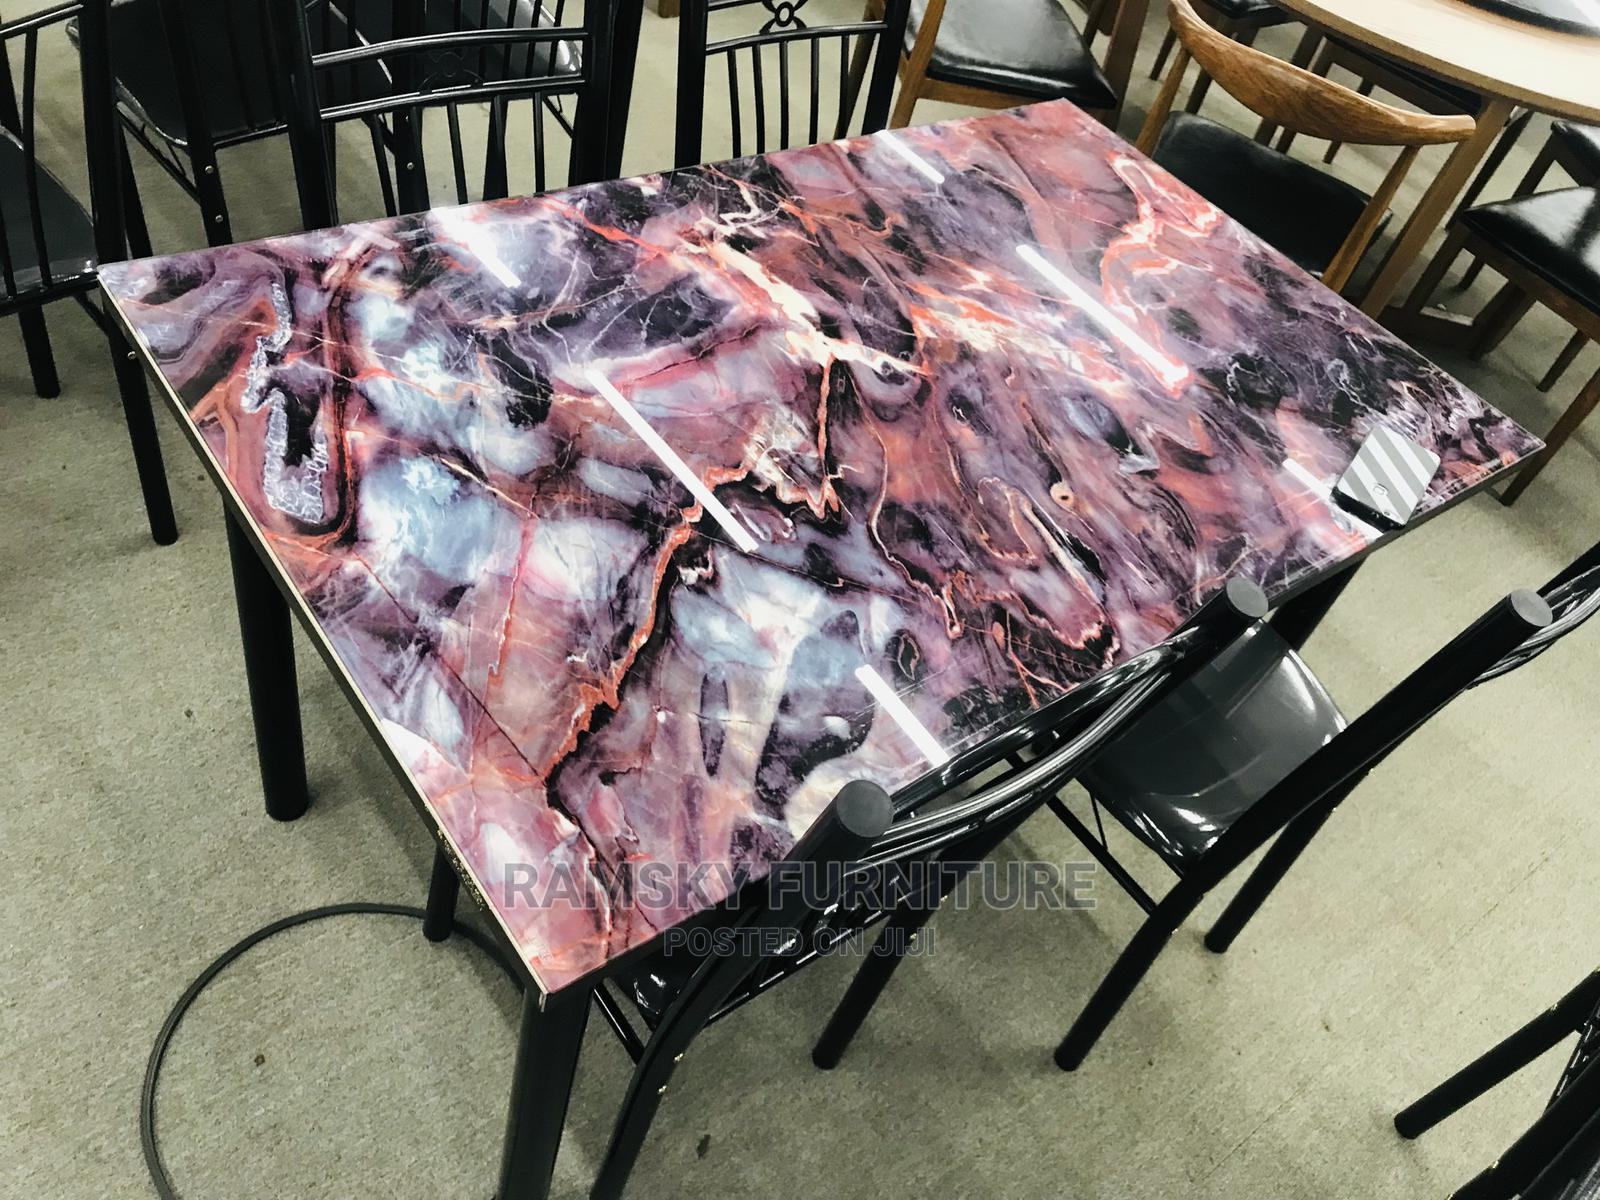 Executives Glass Dining Tables With Chairs | Furniture for sale in Accra Metropolitan, Greater Accra, Ghana